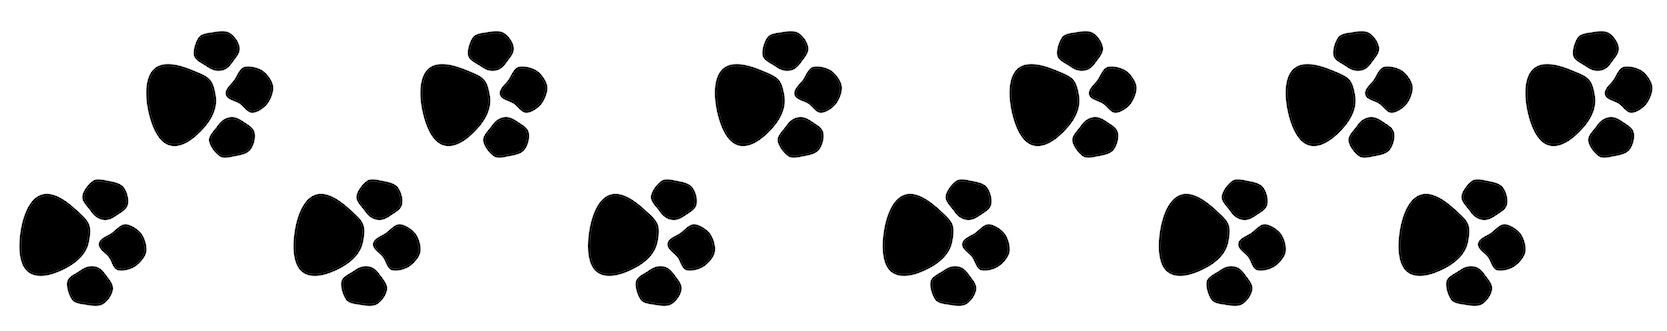 Paw prints clipart 3